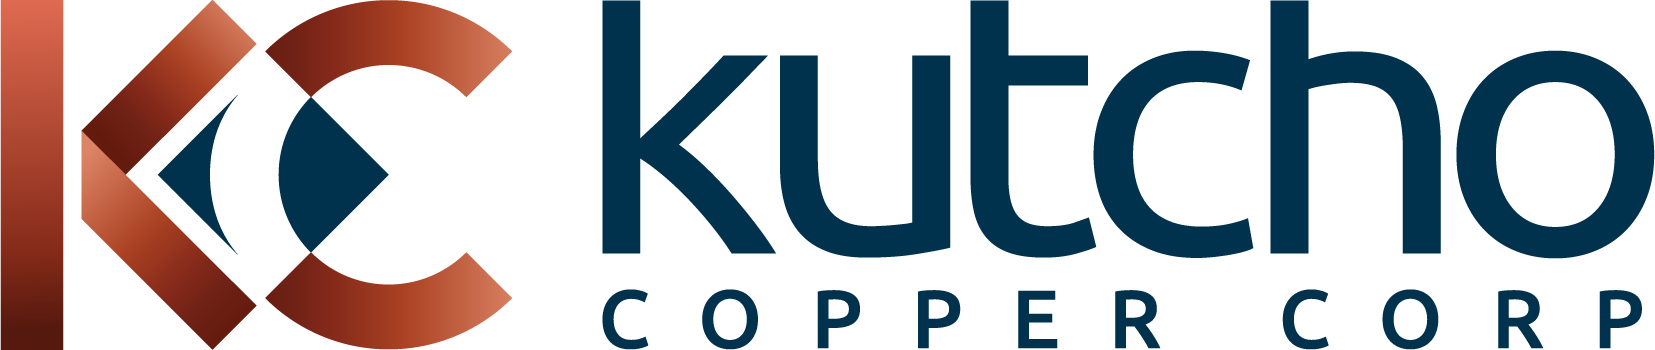 Kutcho Copper Announces $2 Million Private Placement and Interest Deferral Agreement with Wheaton Precious Metals